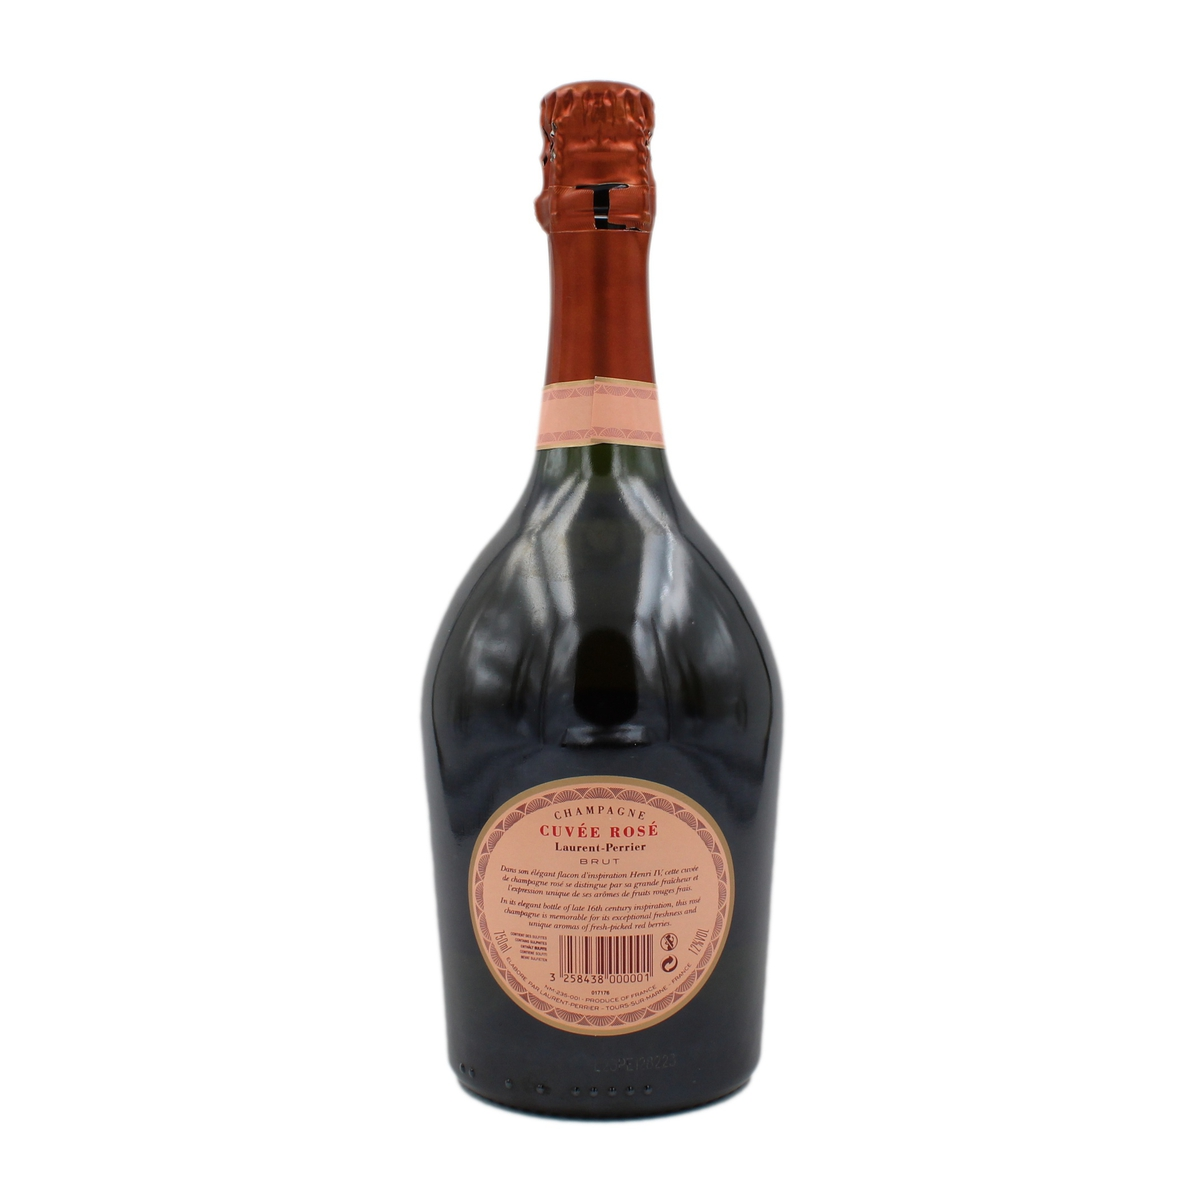 Cuvée Rosé Laurent-Perrier